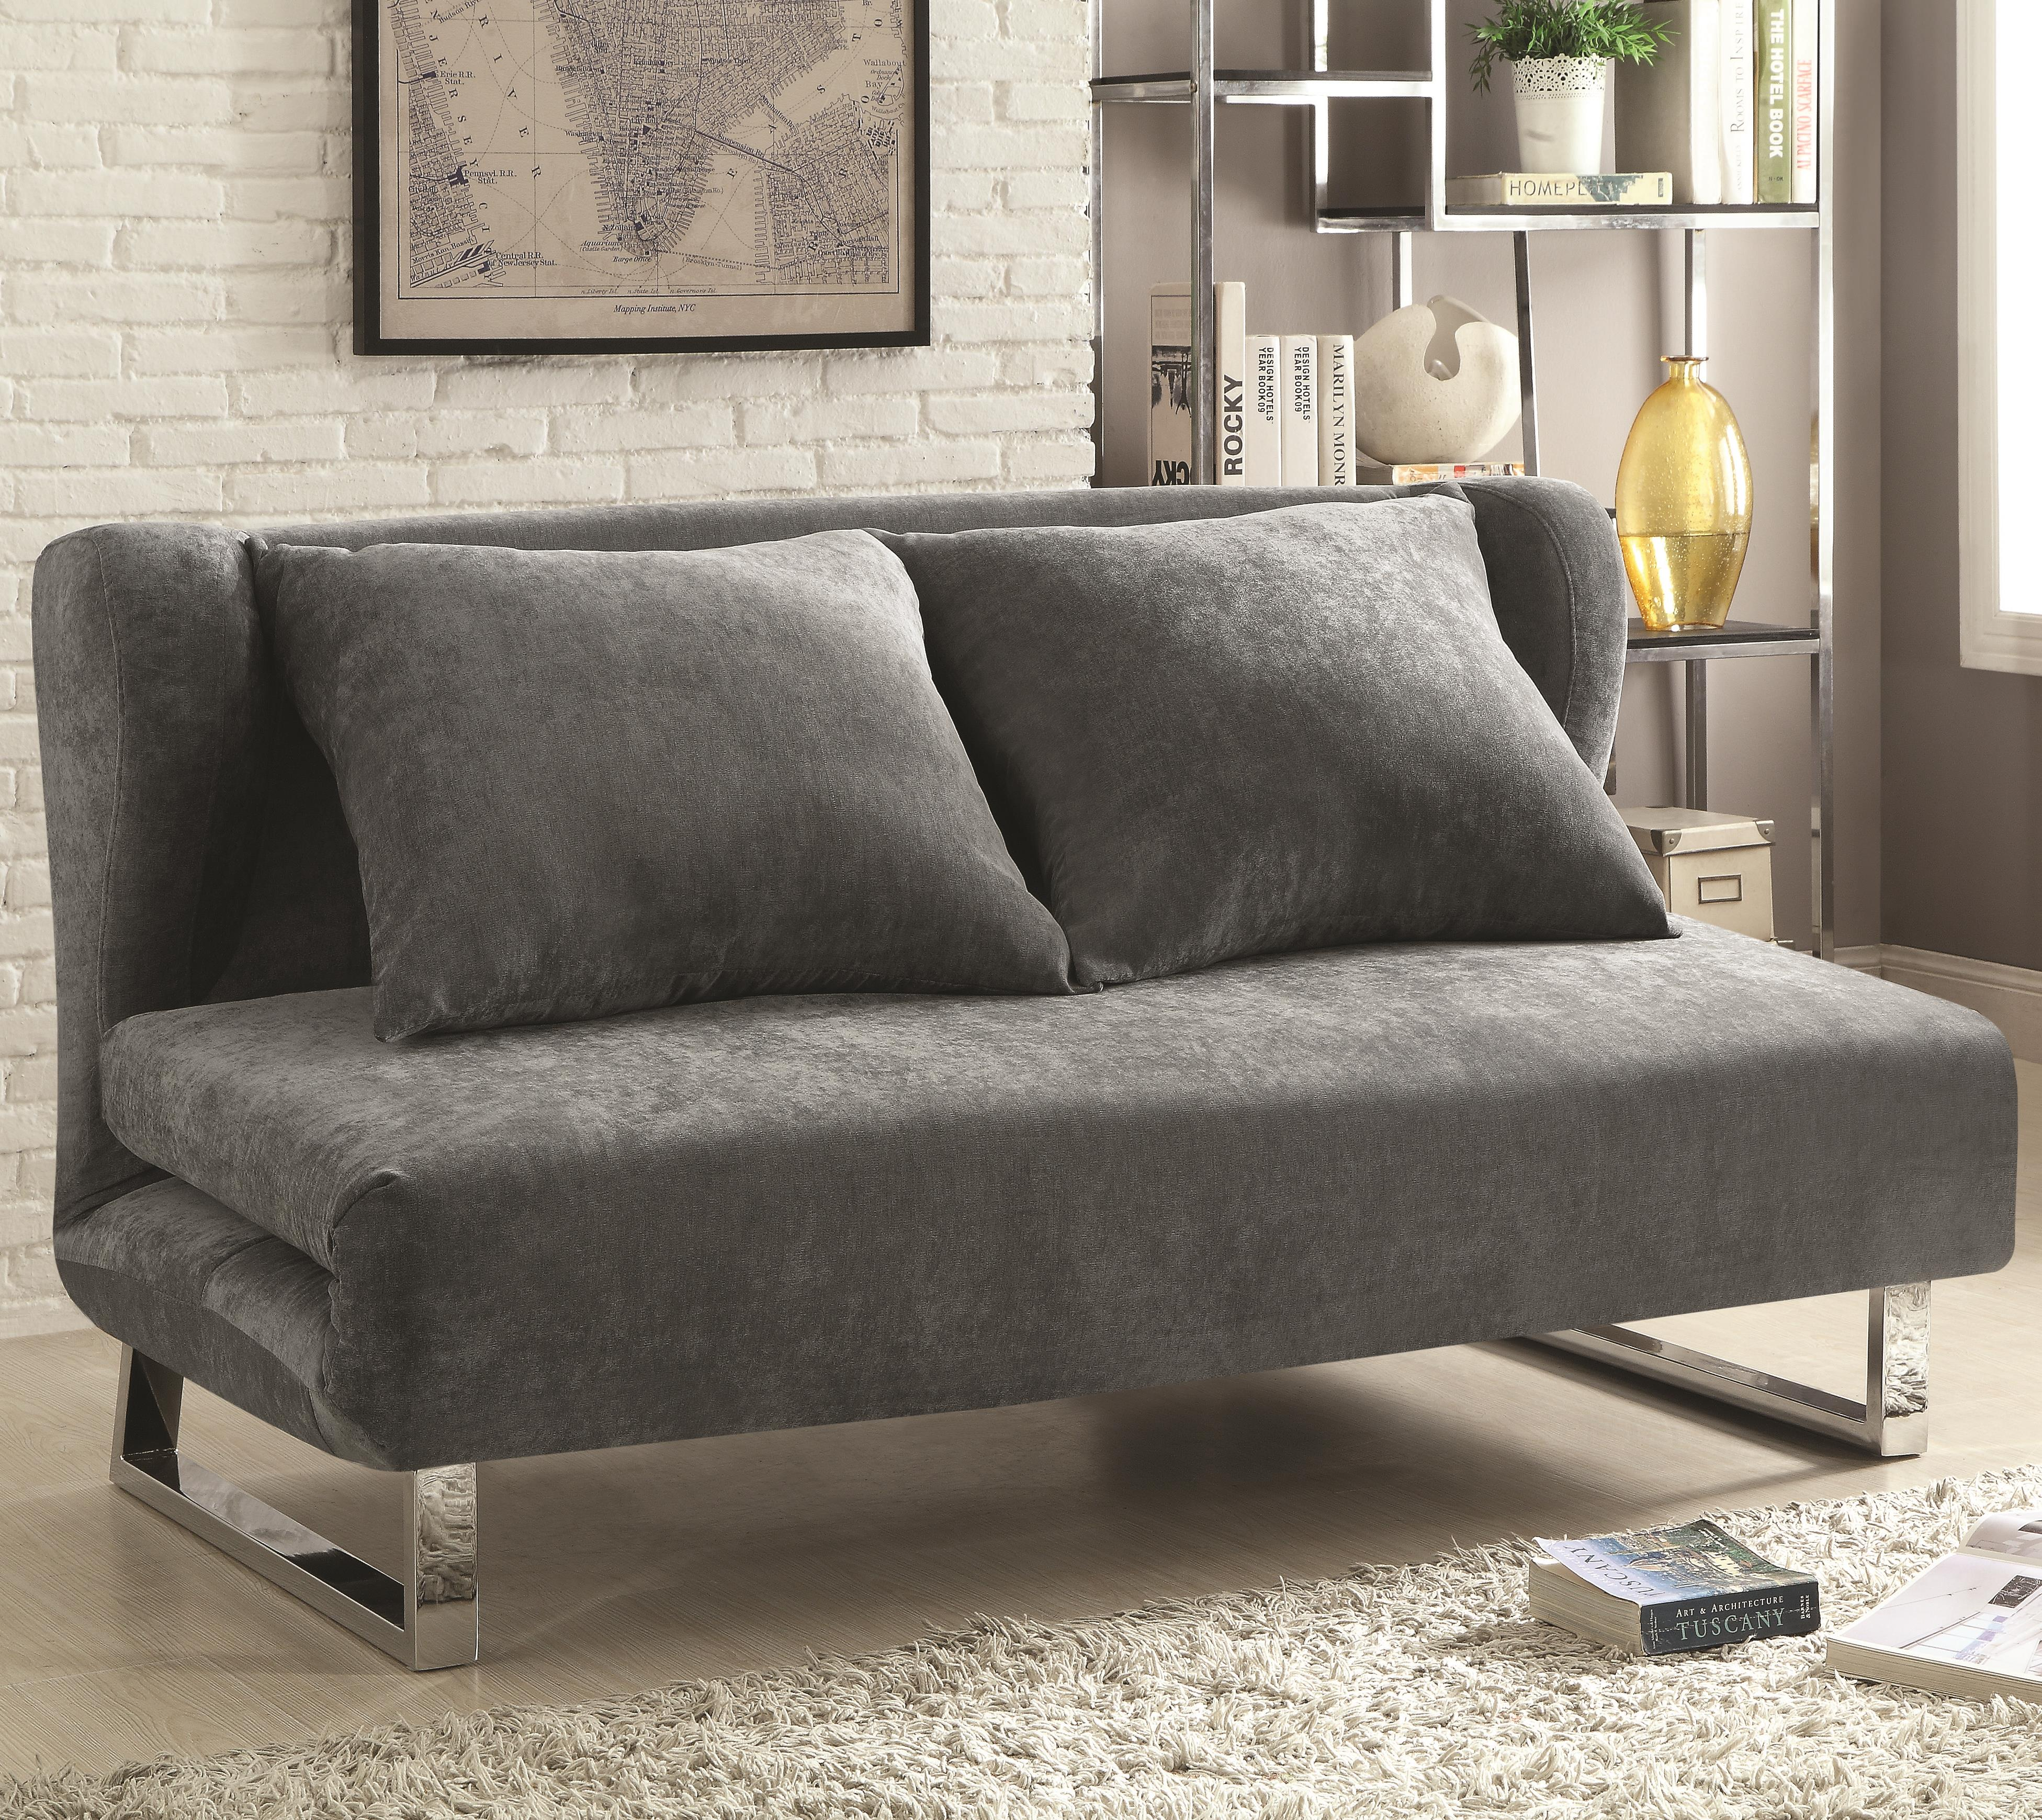 Sofa Beds and Futons – Transitional Velvet Sofa Bed